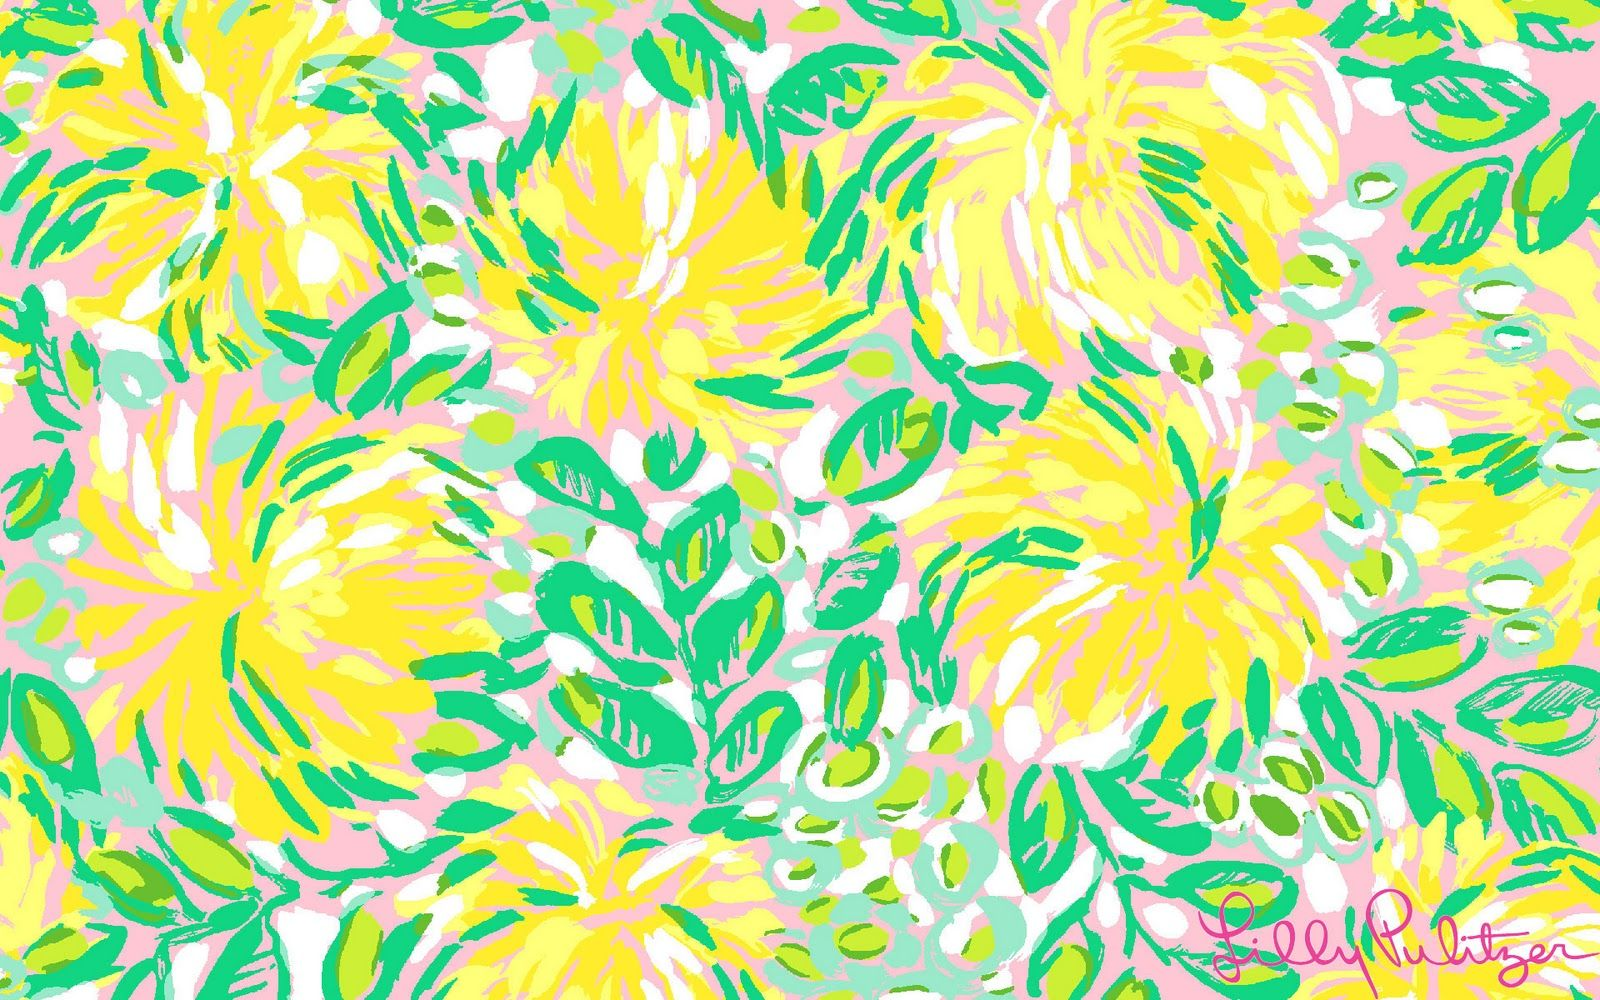 Lilly Pulitzer Desktop Background Lilly Pulitzer Patterns Vera Bradley Wallpaper Lilly Pulitzer Prints